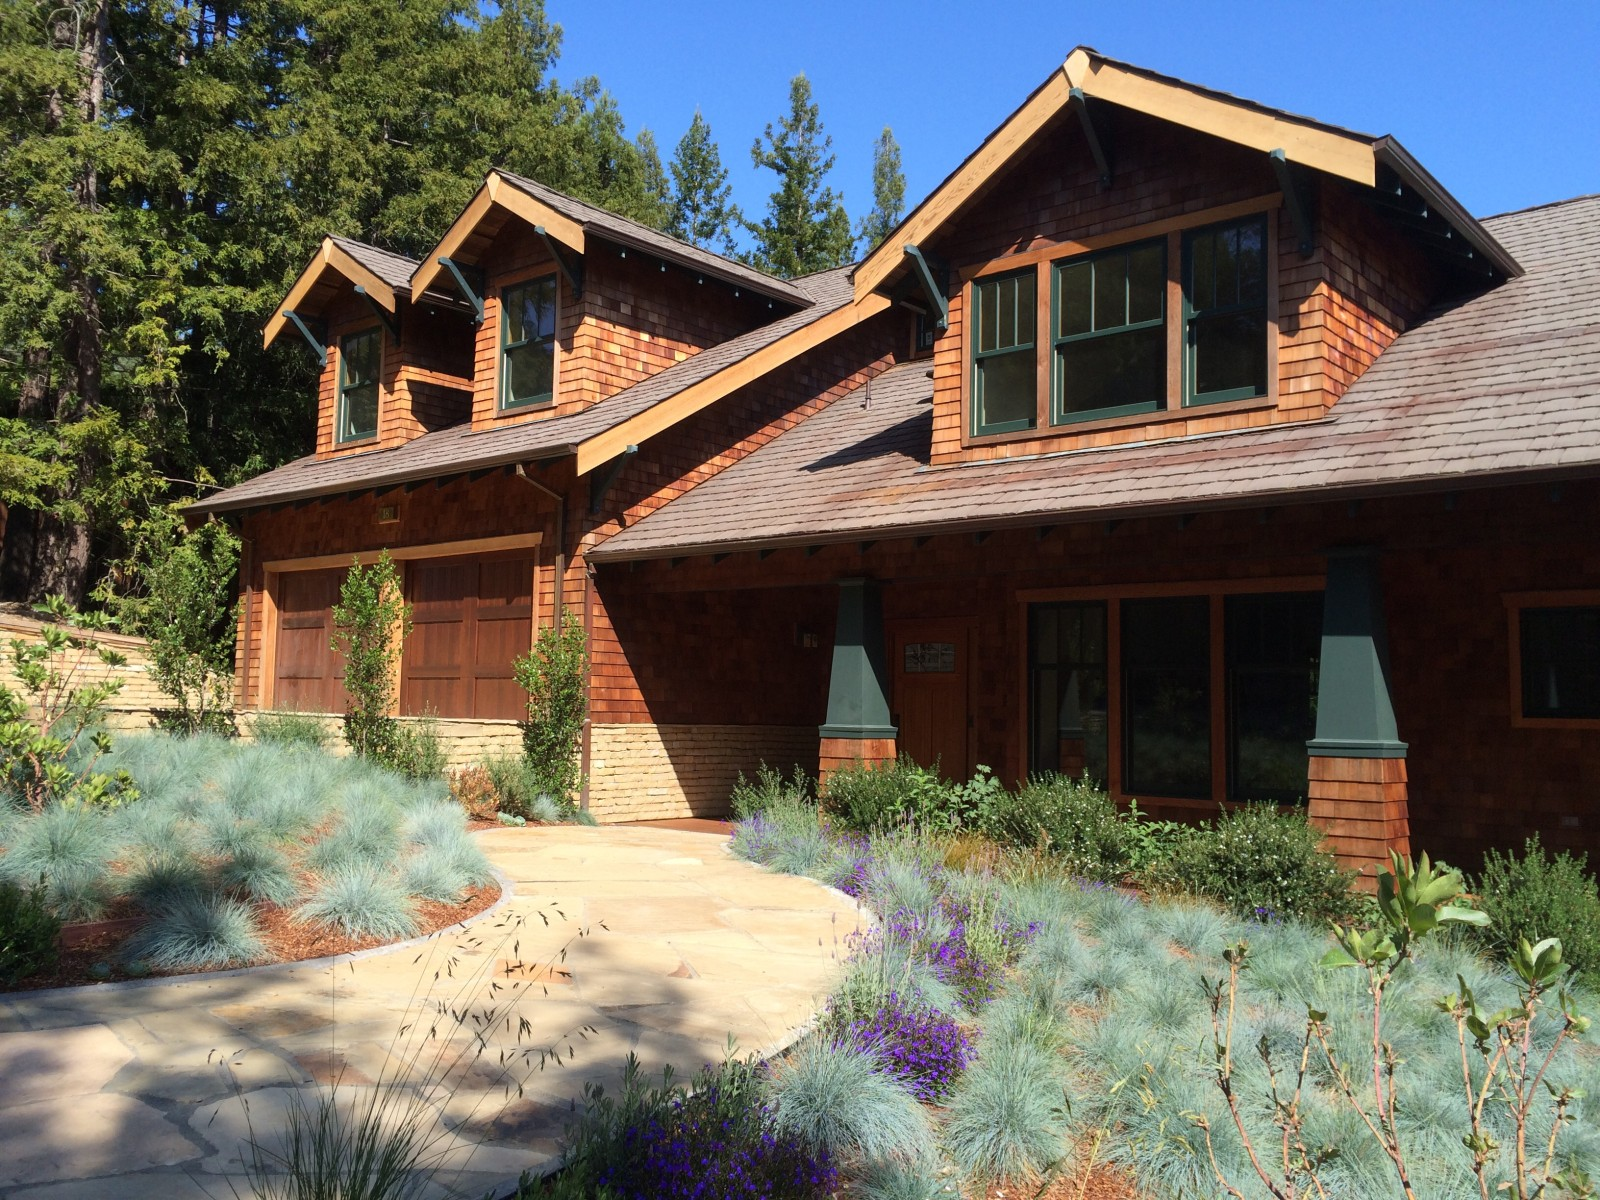 Traditional Craftsman, Lone Tree Residential Design, Anthony M. Richards, Mill Valley Blithedale Canyon